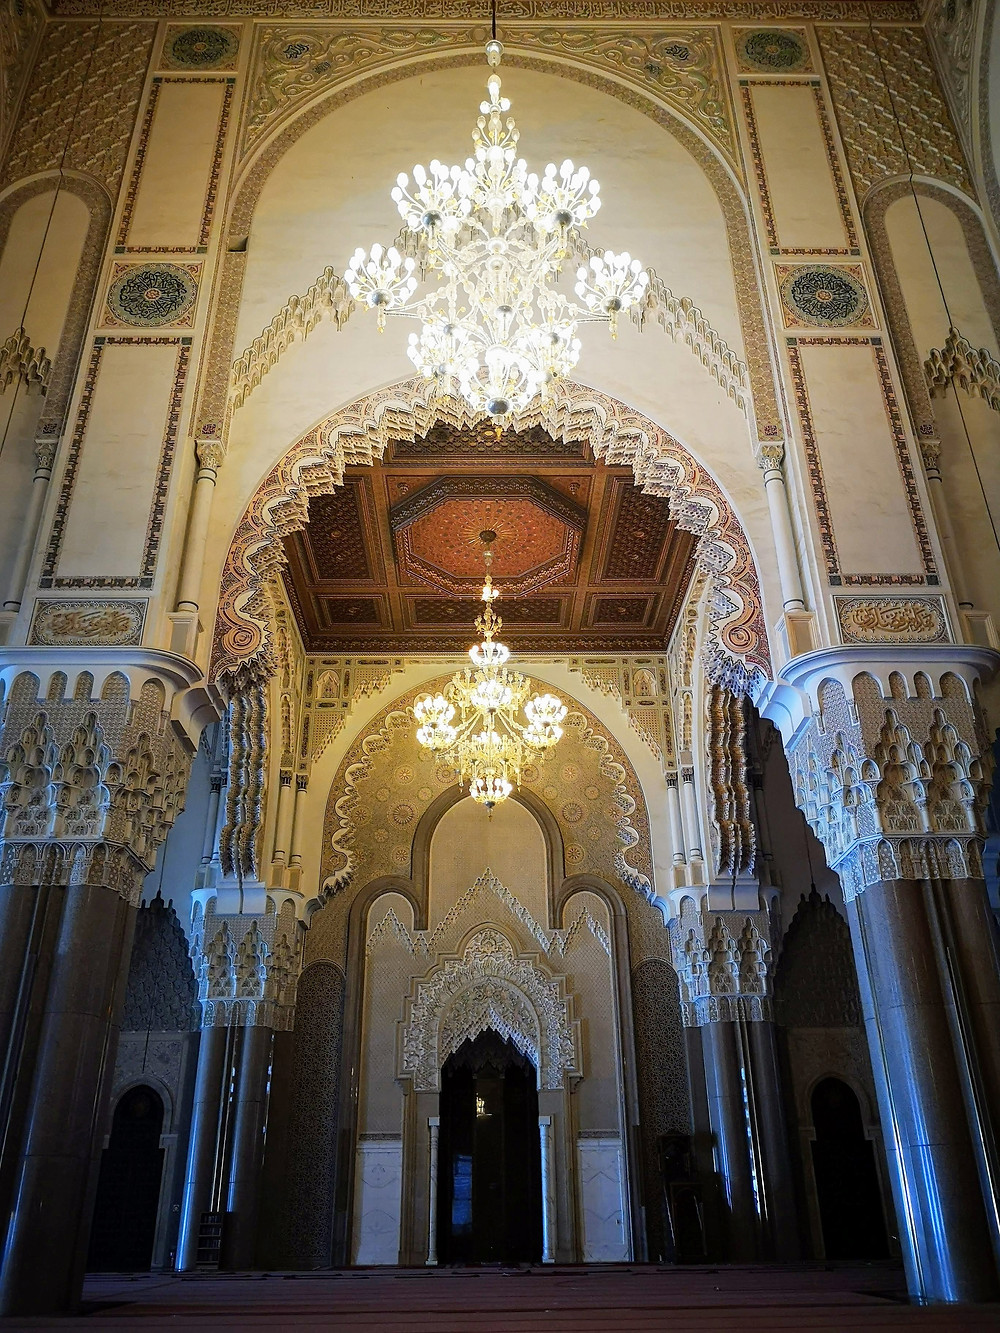 Adornment inside Hassan II Mosque